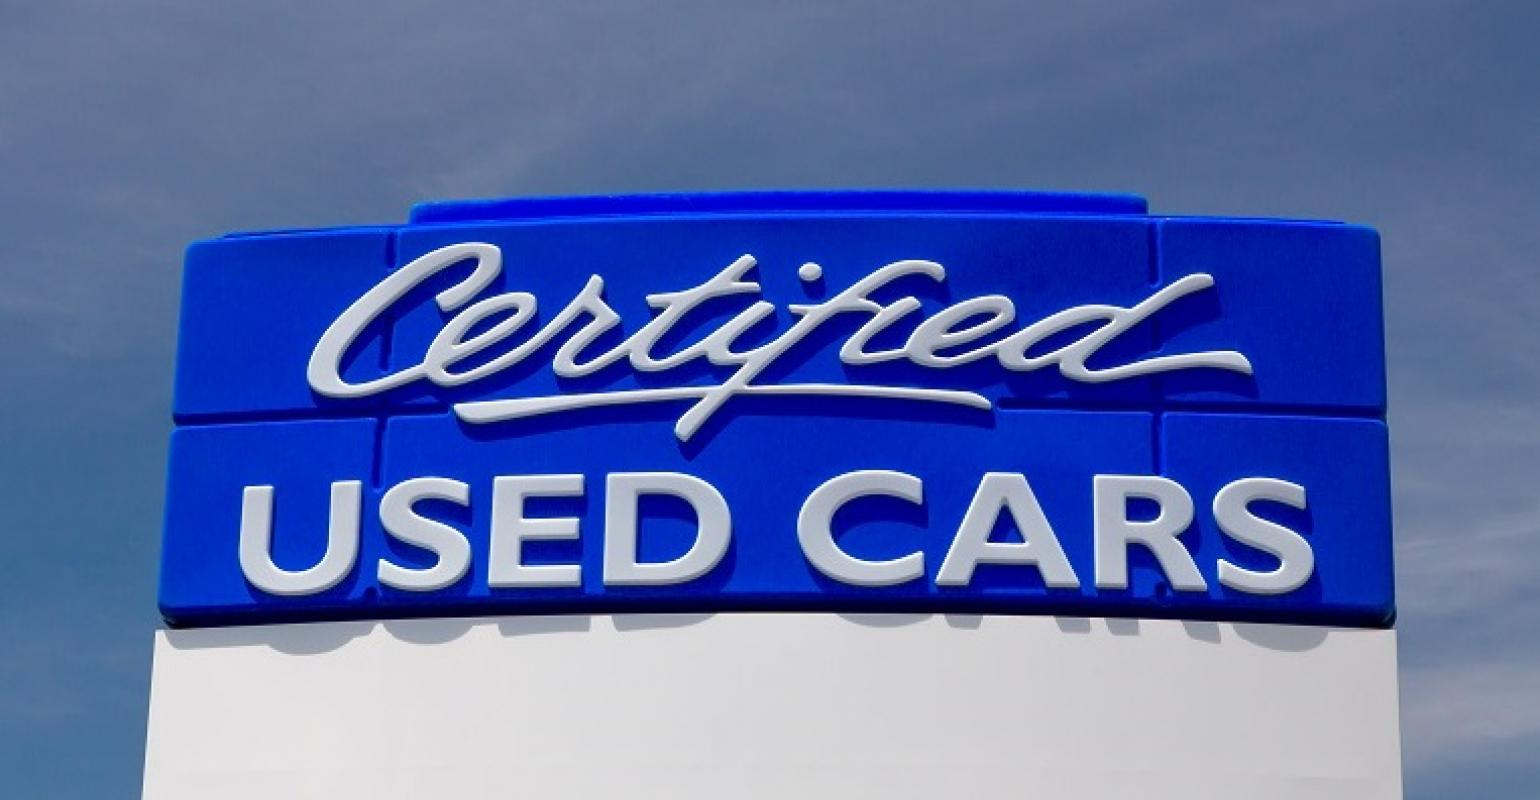 Used Certified Cars >> Car Dealership Used Vehicle Ops Draw More Automaker Interest